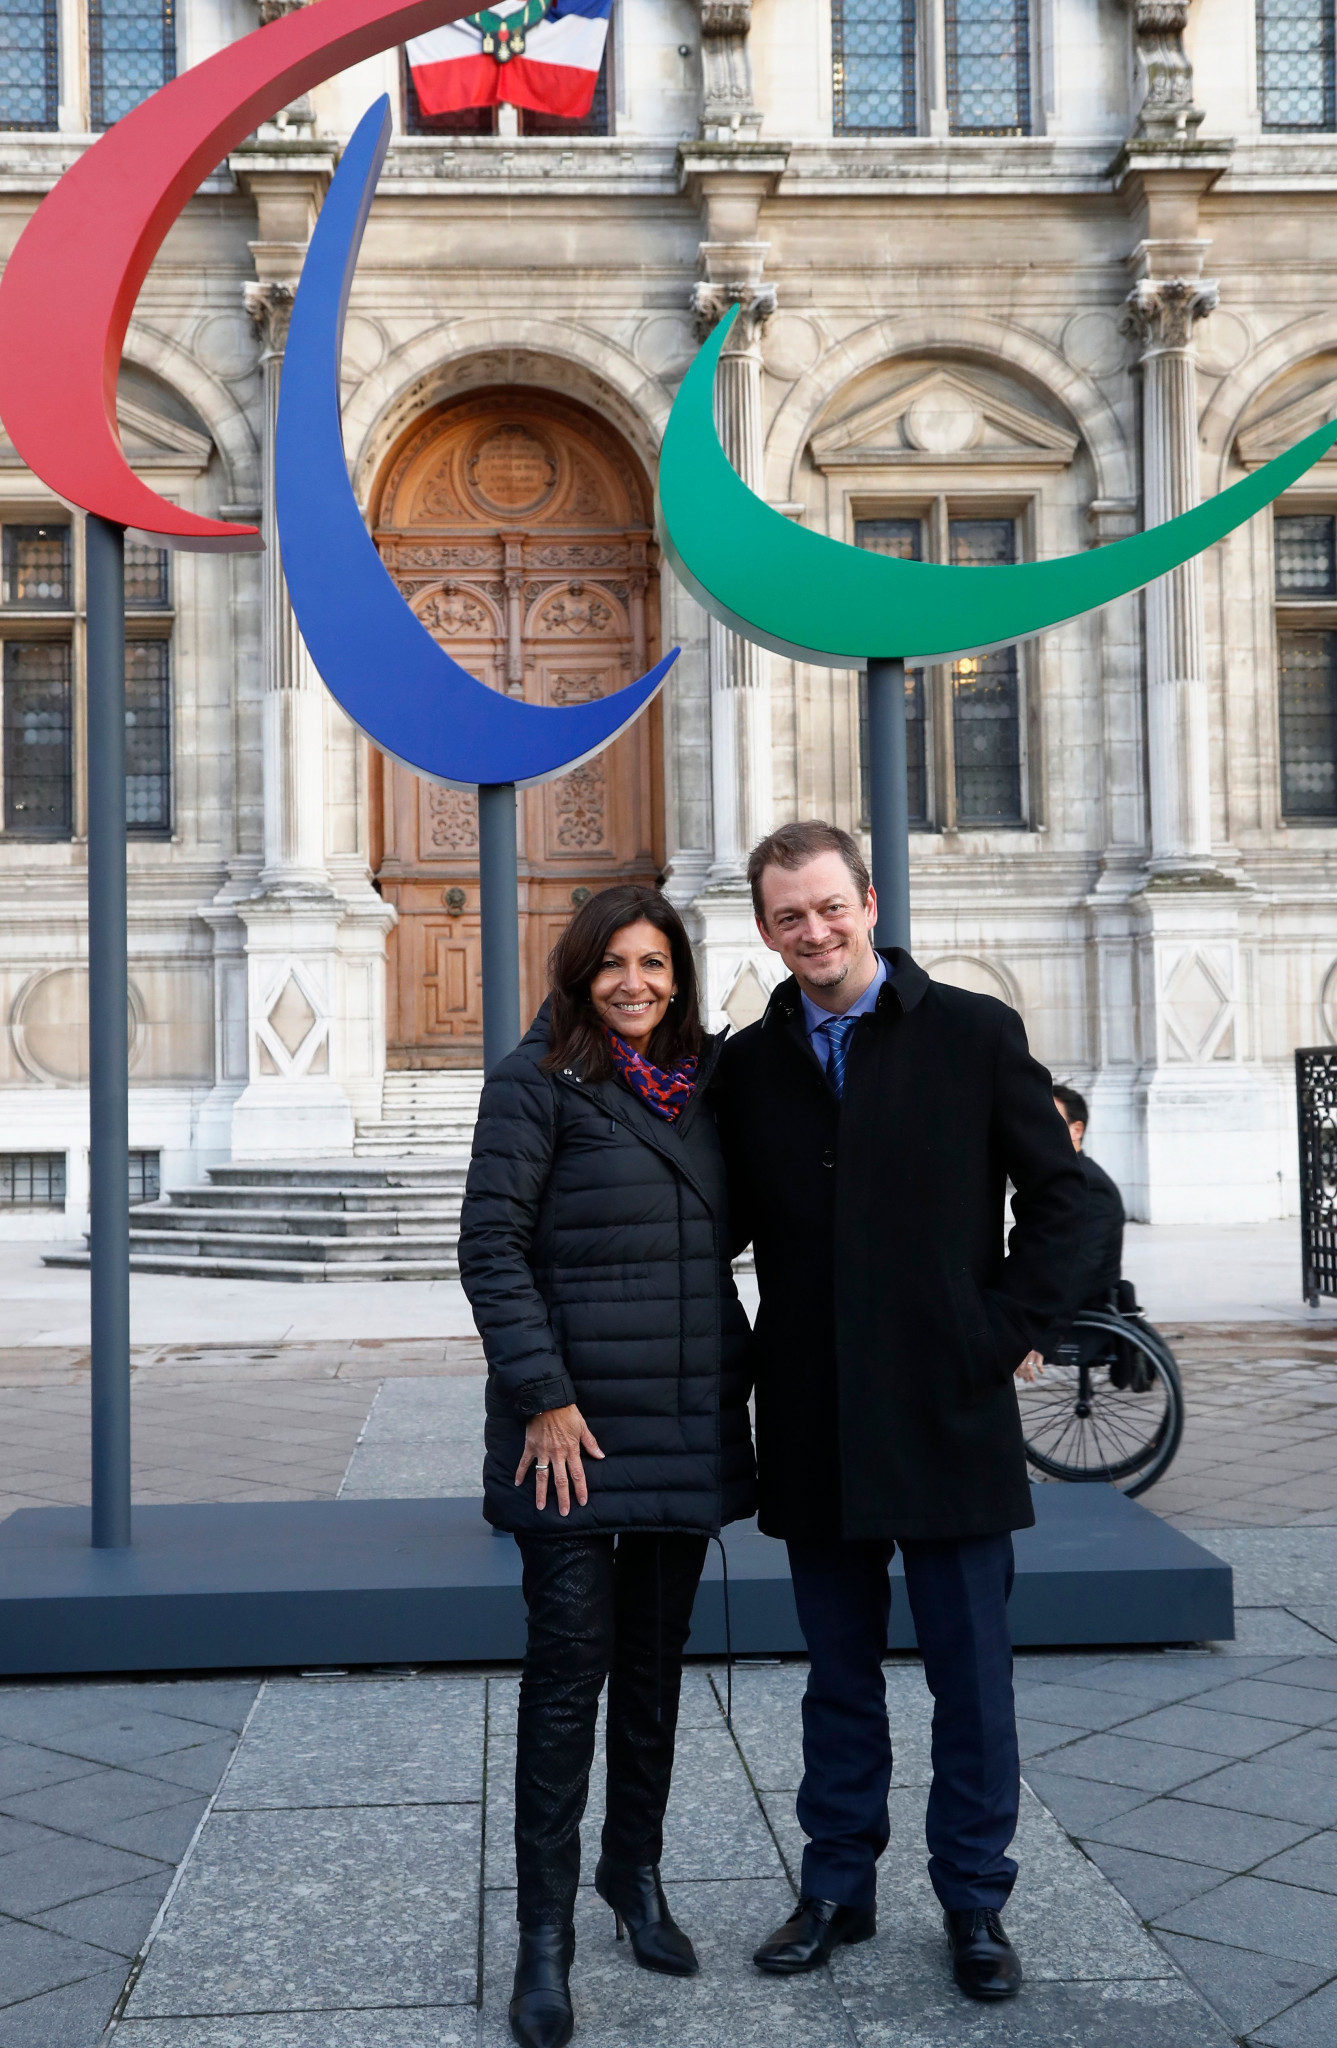 Anne Hidalgo, Mayor of Paris, and IPC President Andrew Parsons present an entente cordiale outside the Hotel de Ville in Paris where they discussed the French capital hosting the 2024 Paralympic Games ©Getty Images